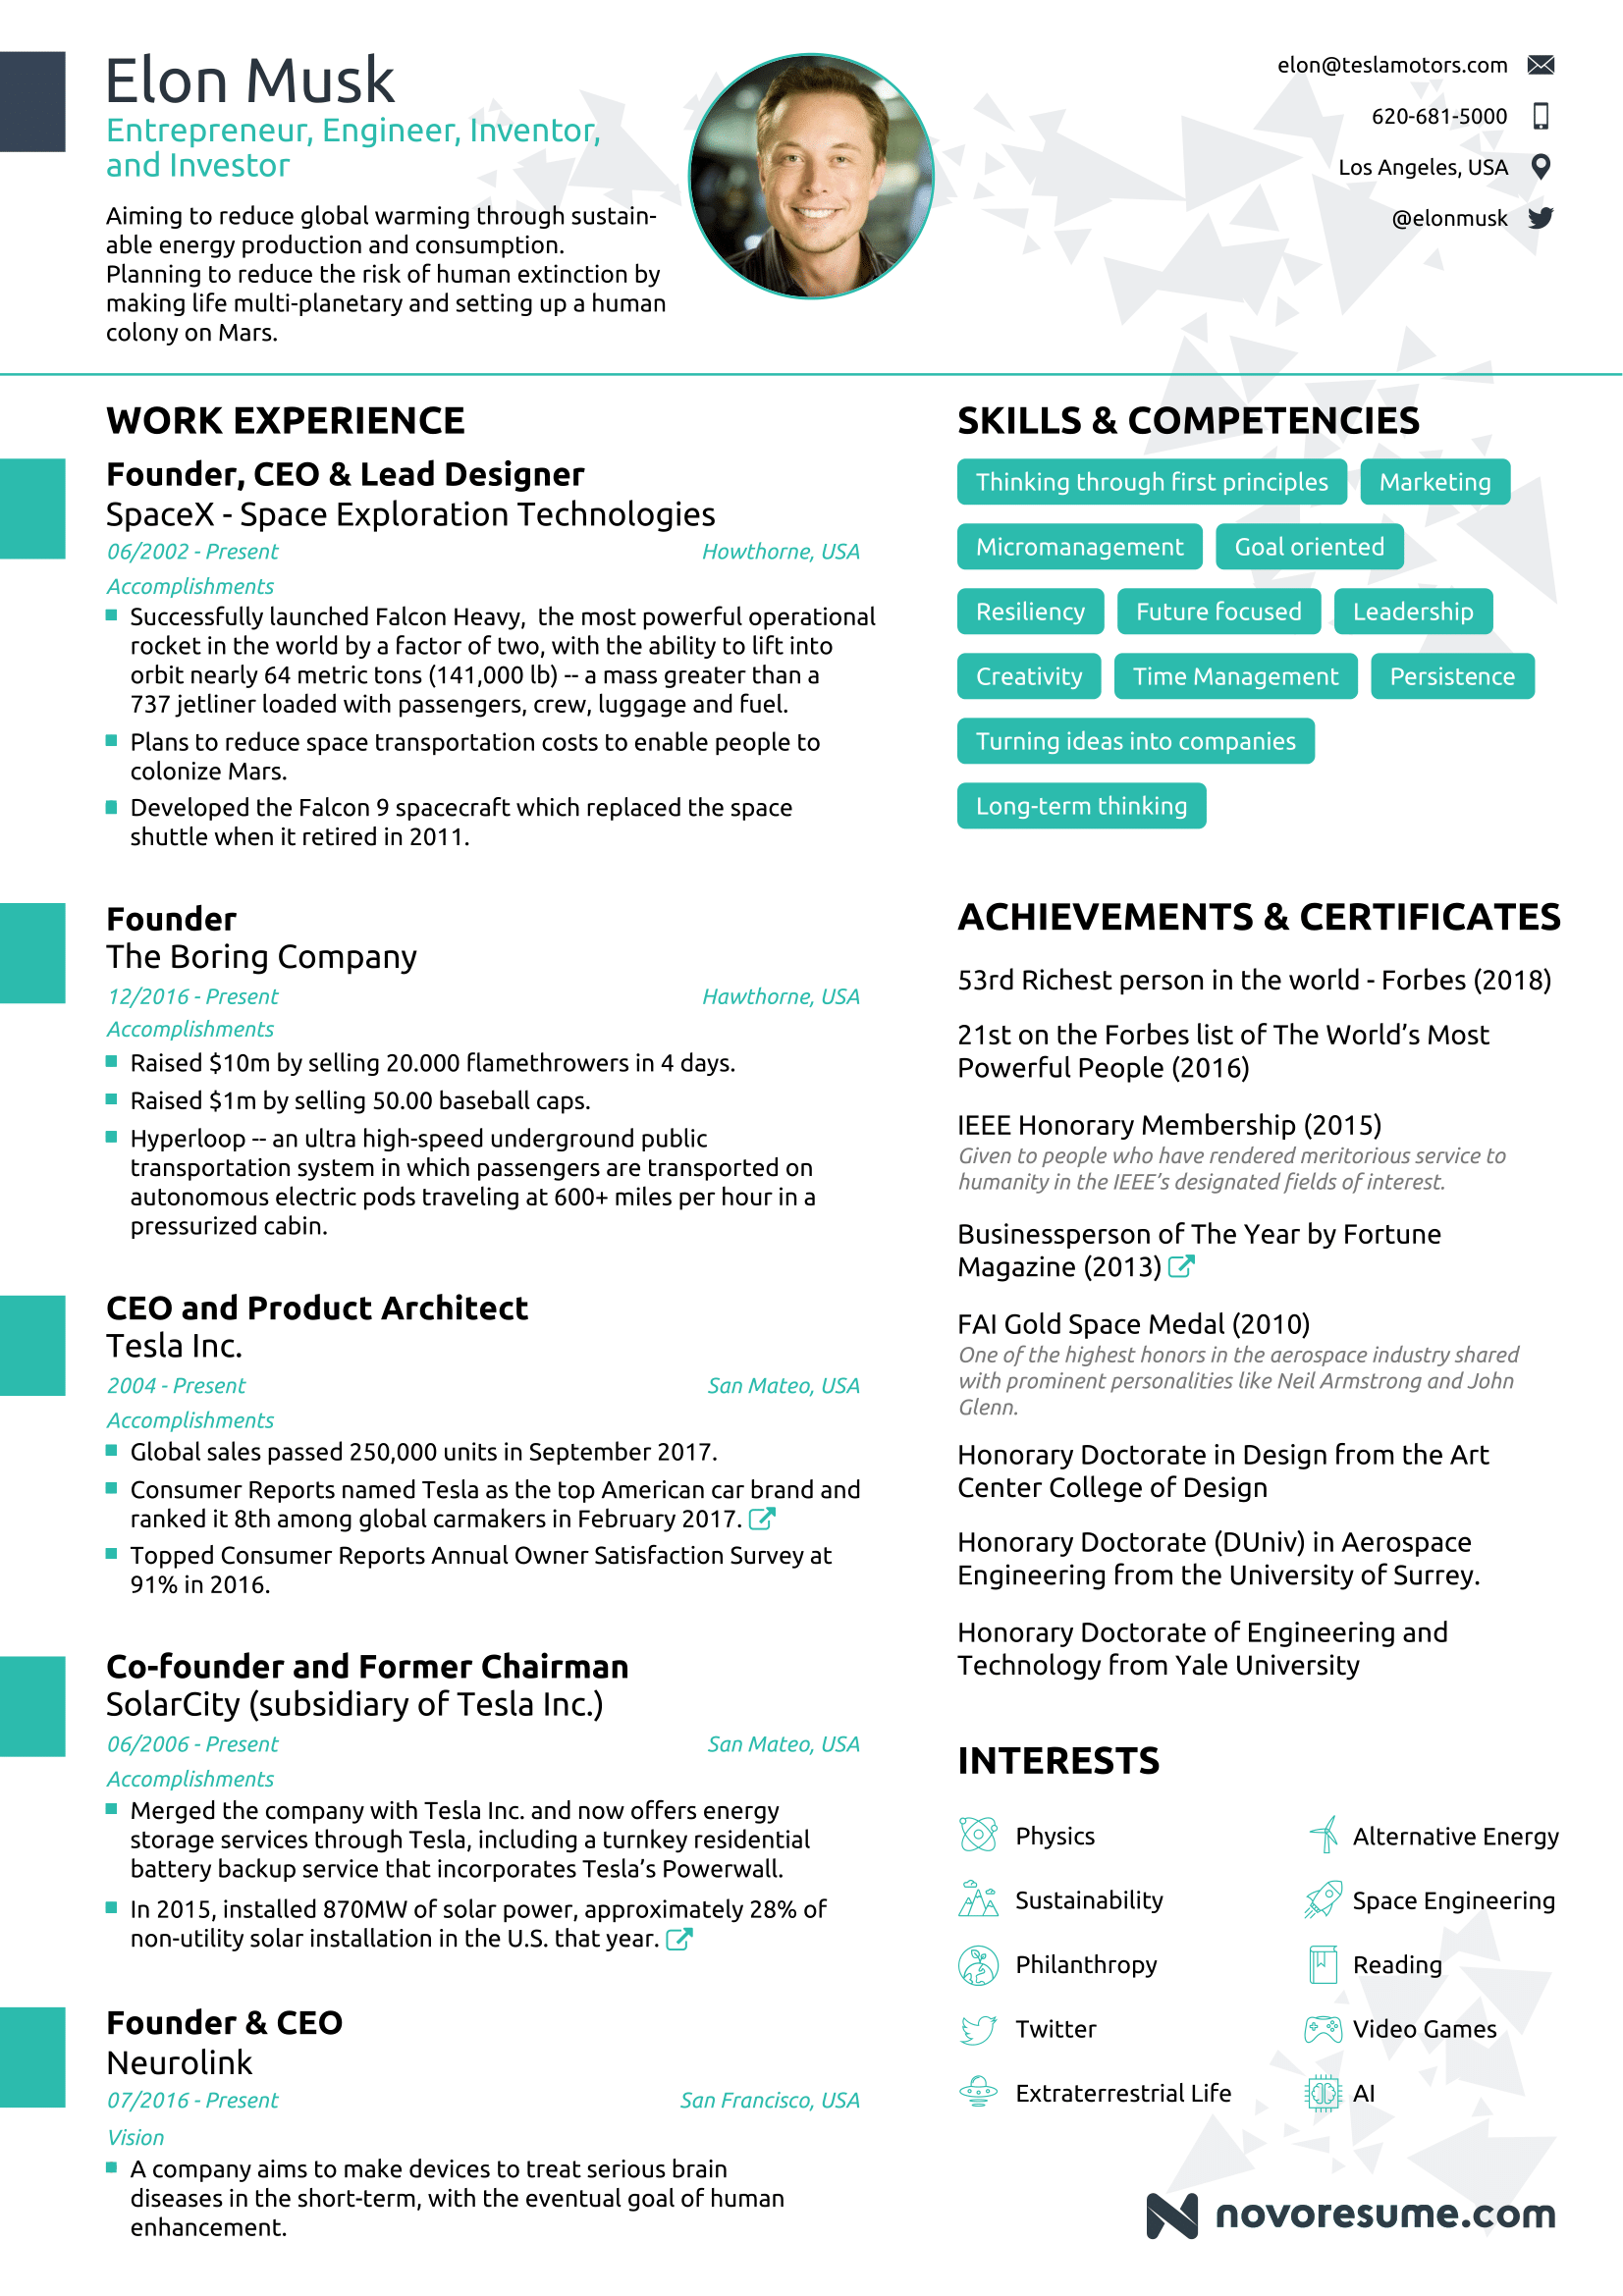 the résumé of elon musk  by novorésumé - elon musk resume